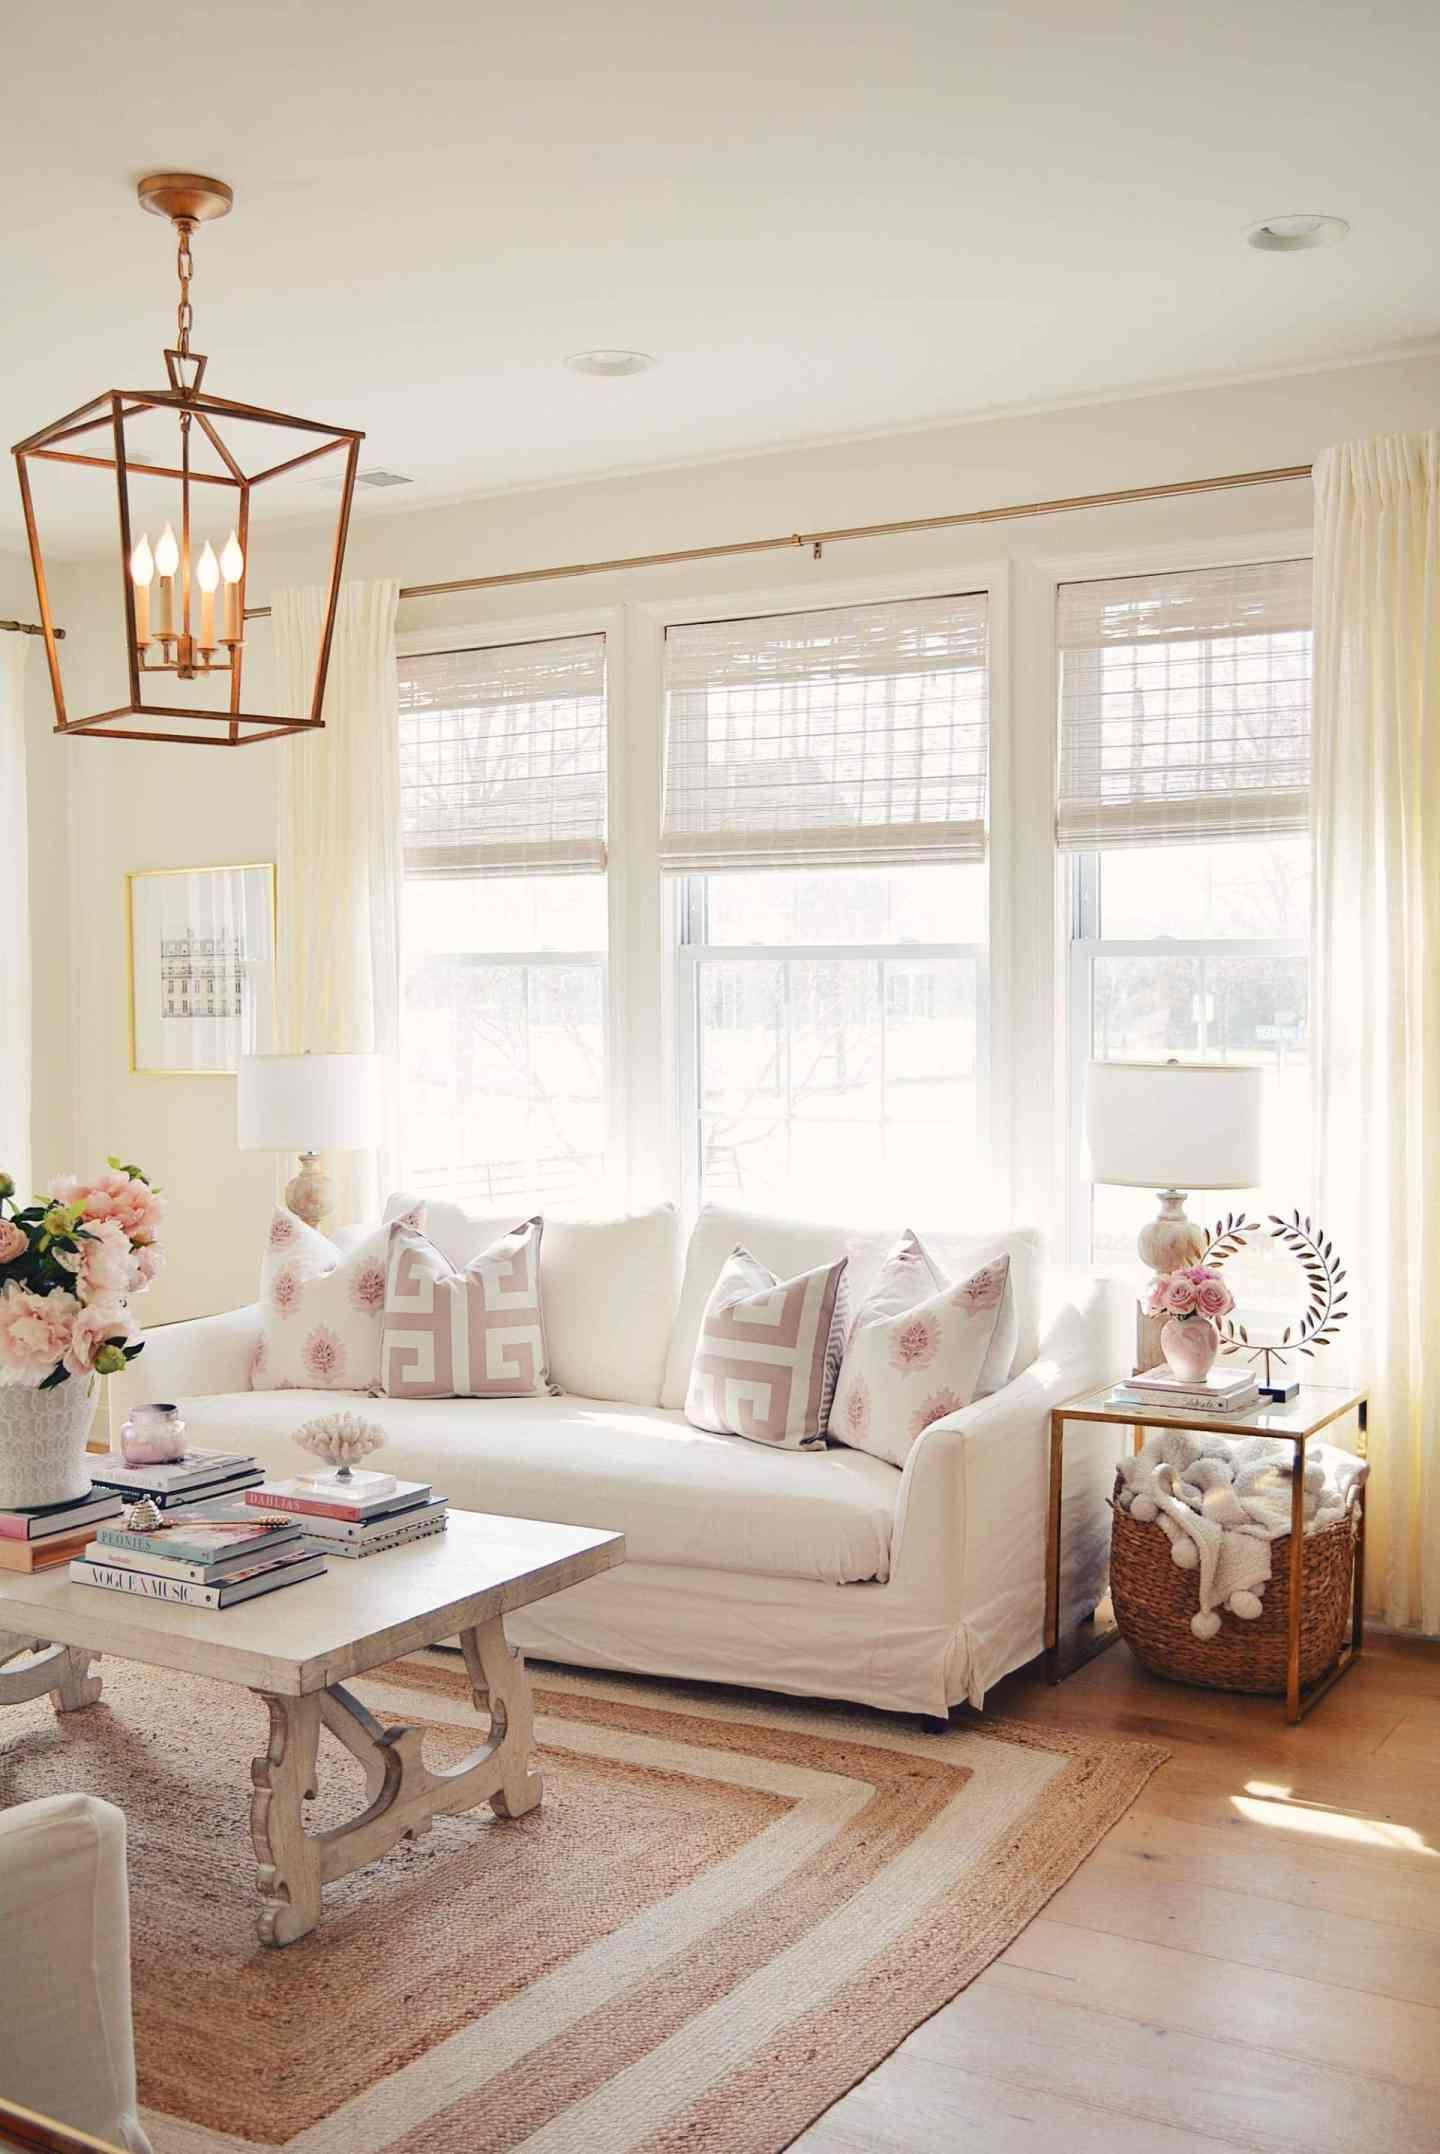 Affordable Window Treatments The Best Cheap Curtains Blinds For Your Home In 2020 Window Treatments Living Room Curtains Living Room Living Room Windows